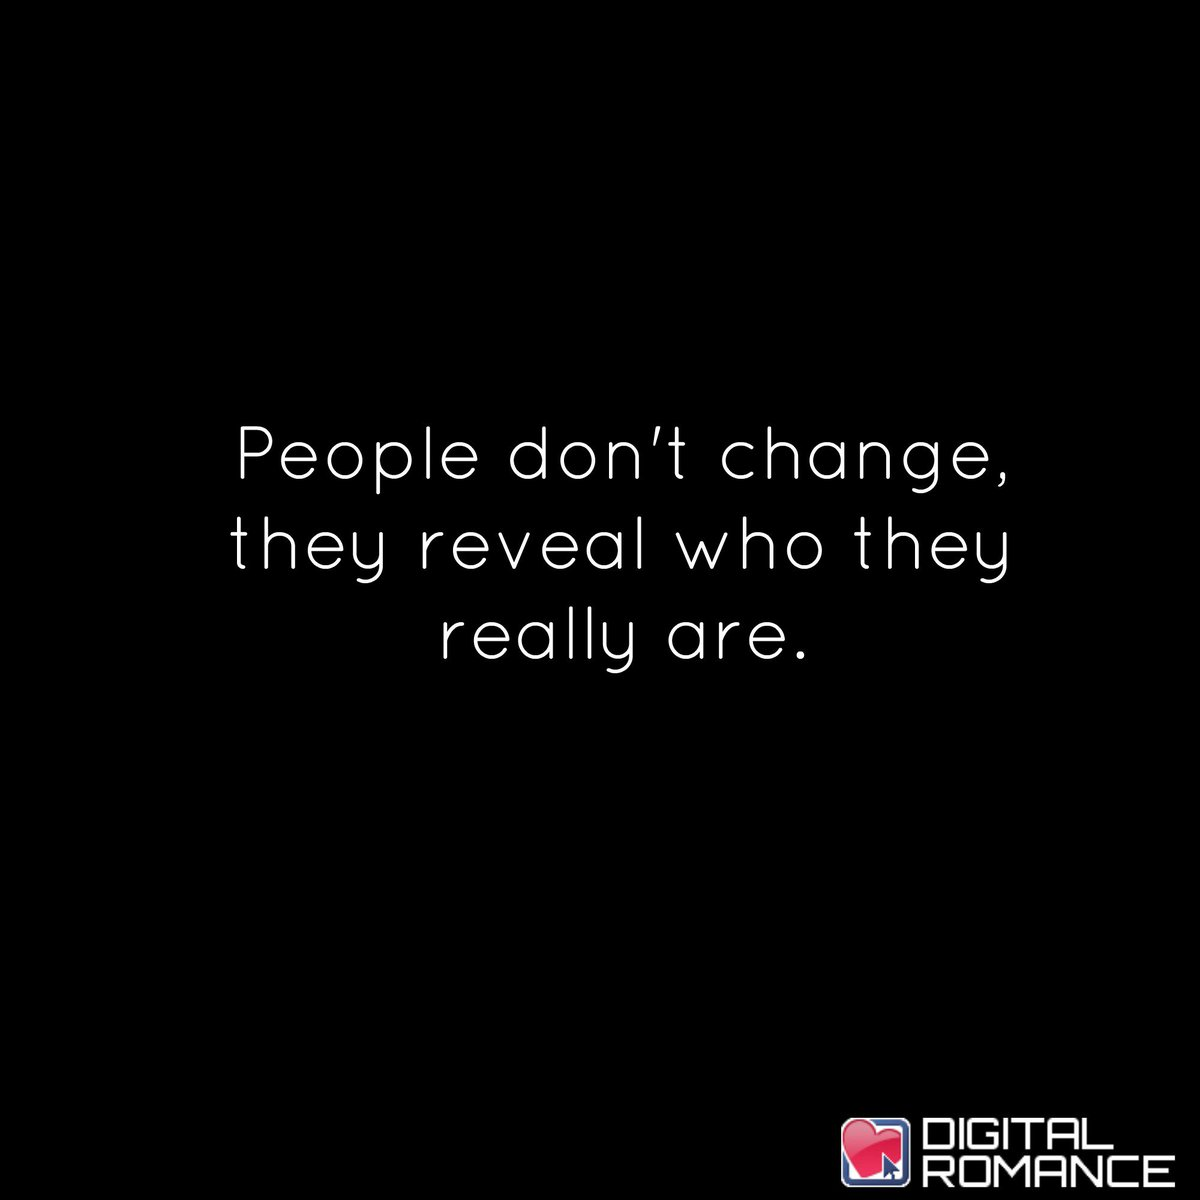 Digital Romance Inc On Twitter People Dont Change They Reveal